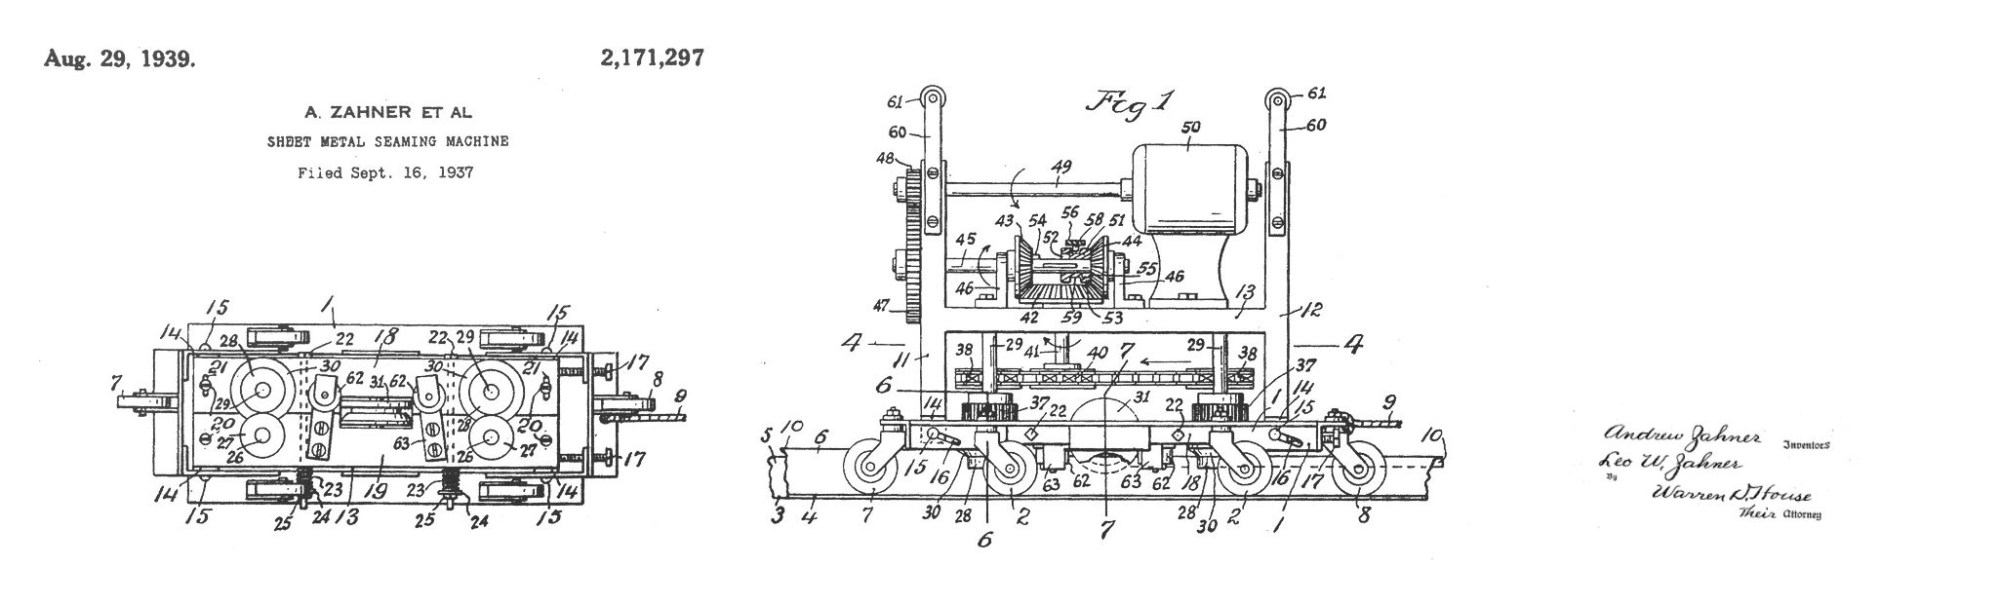 hight resolution of a zahner patent jpg